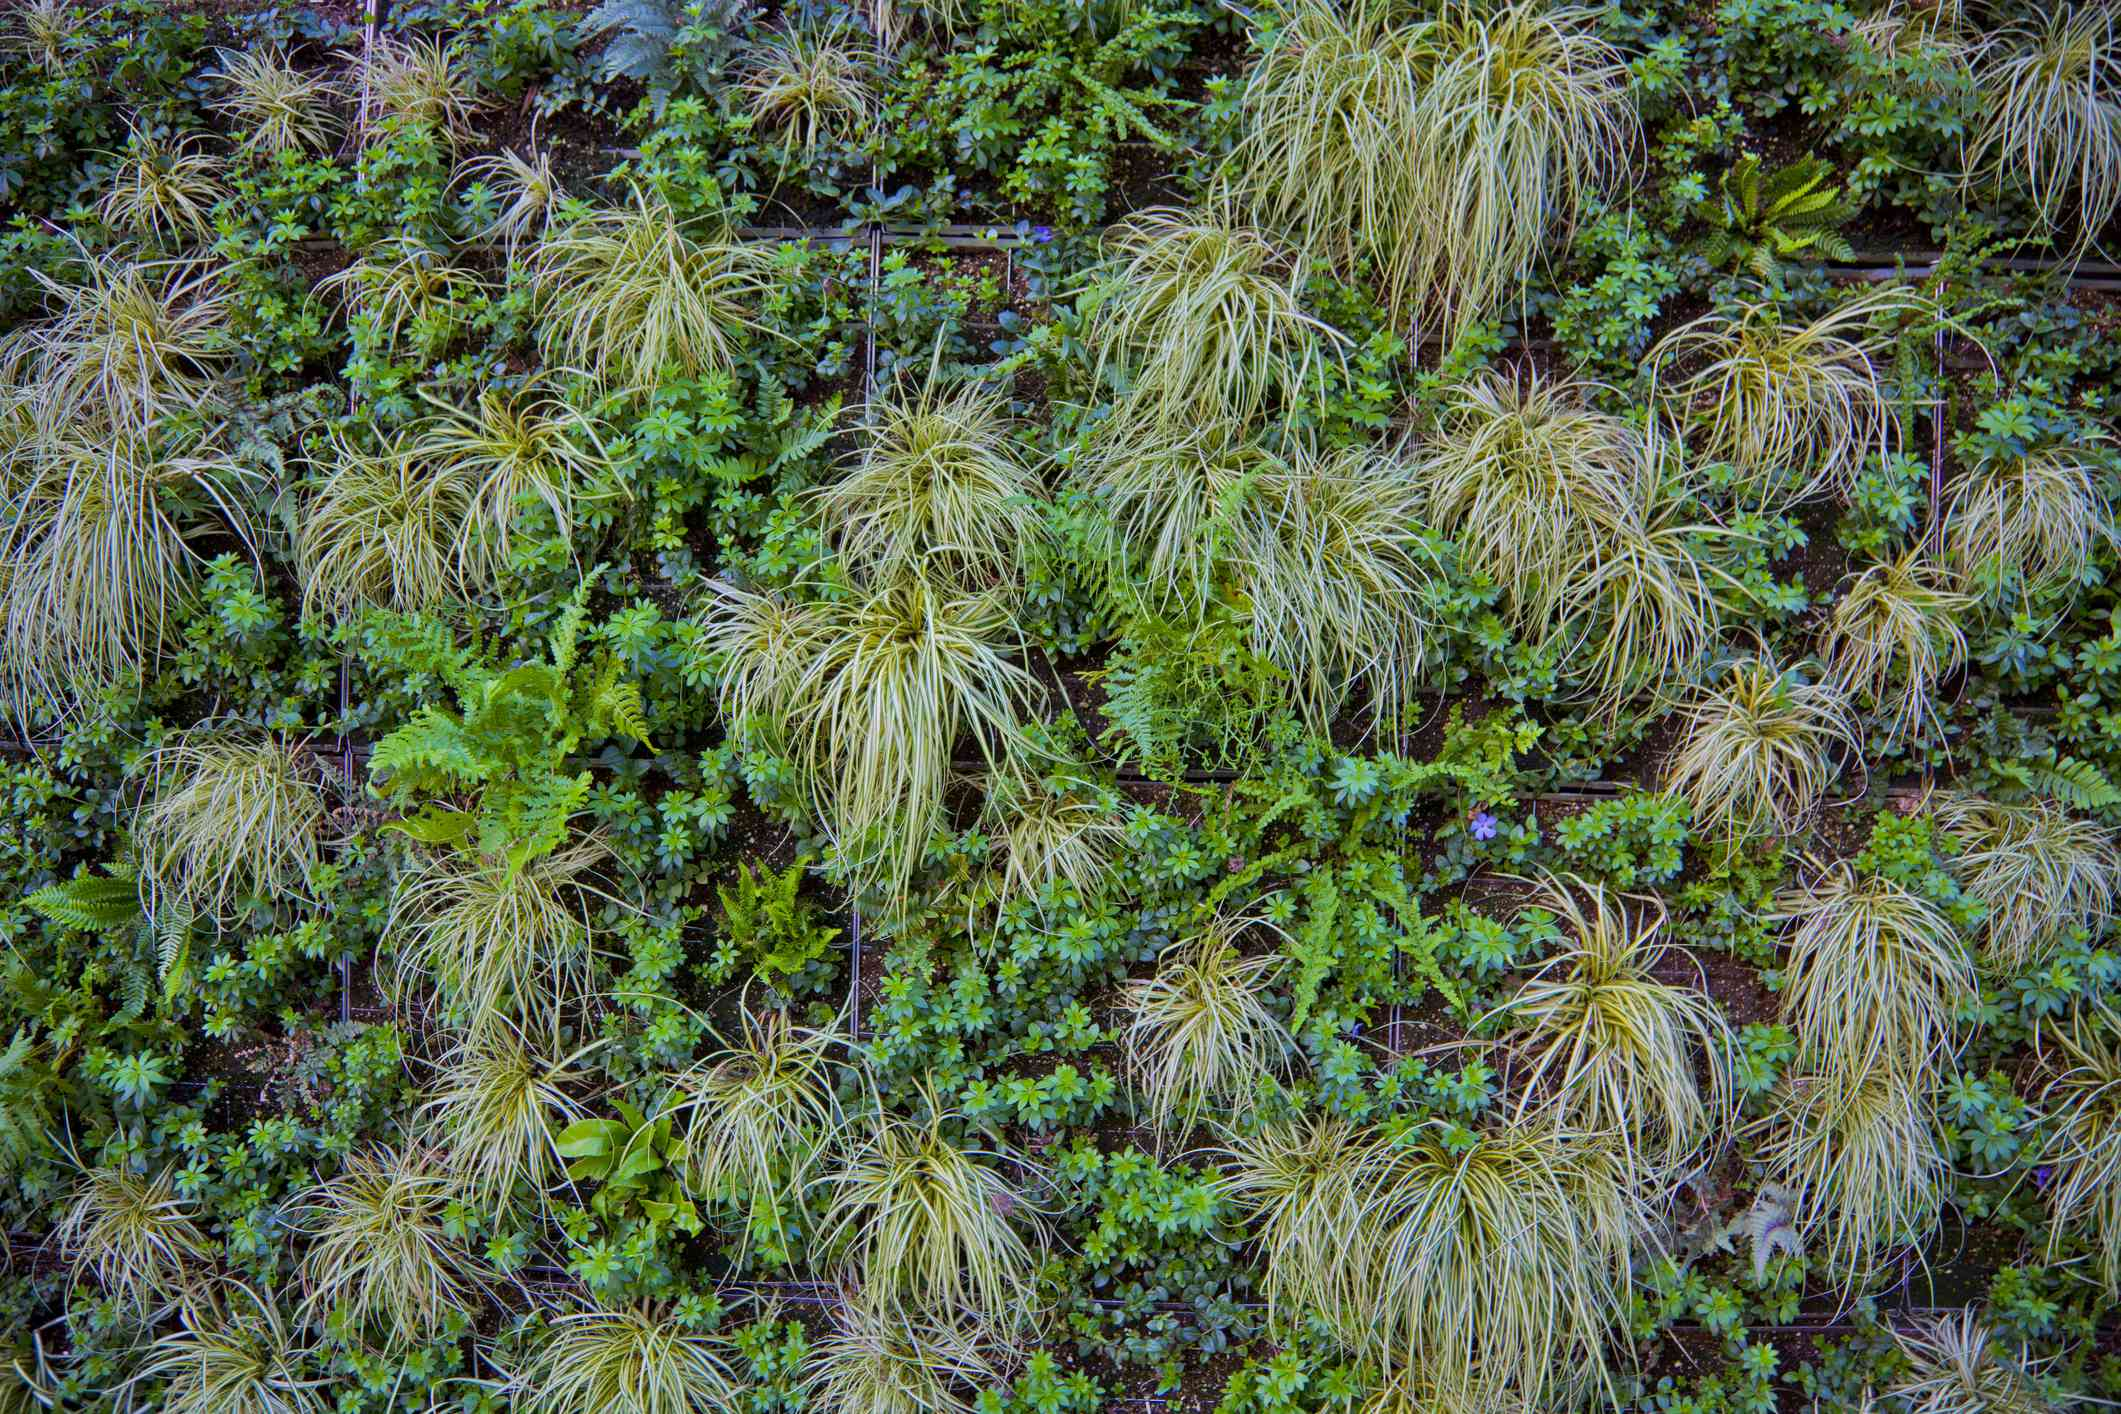 A living plant wall in Vancouver, B.C.